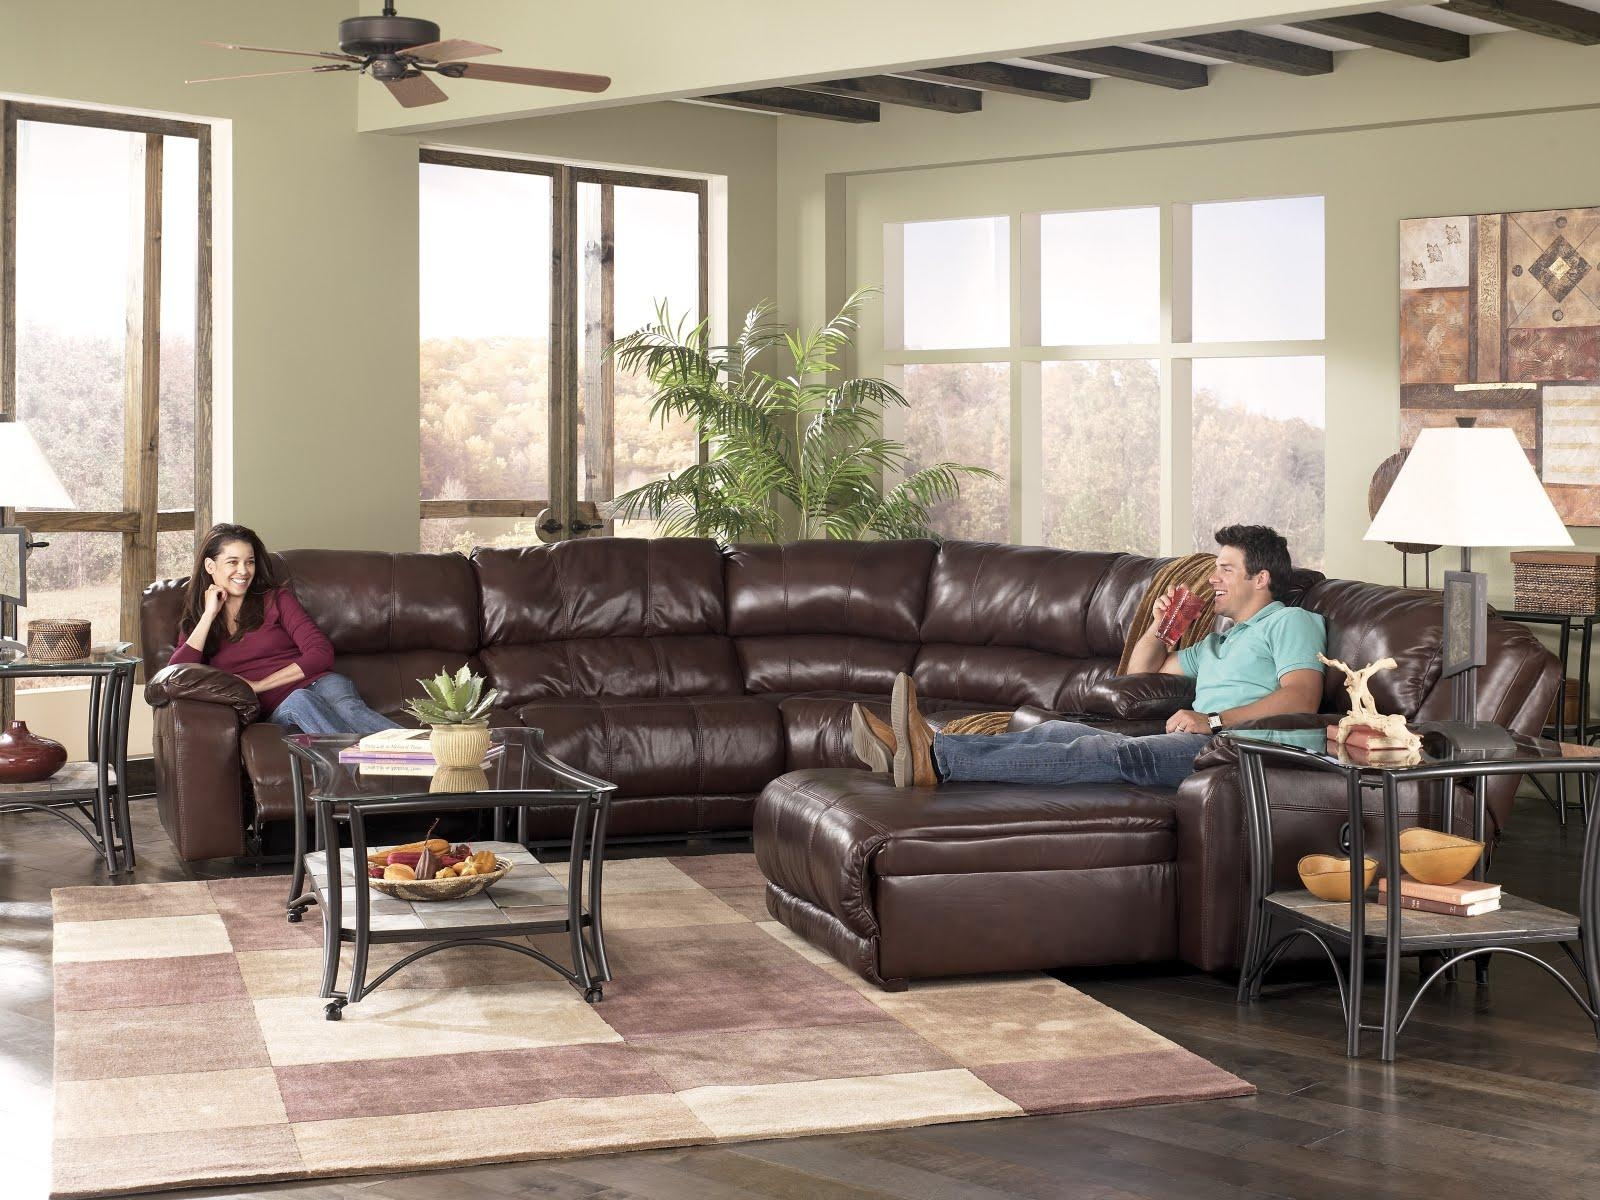 Ashley Furniture Leather Sectional Sofa 86 With Ashley Furniture Pertaining To Ashley Corduroy Sectional Sofas (Image 1 of 20)